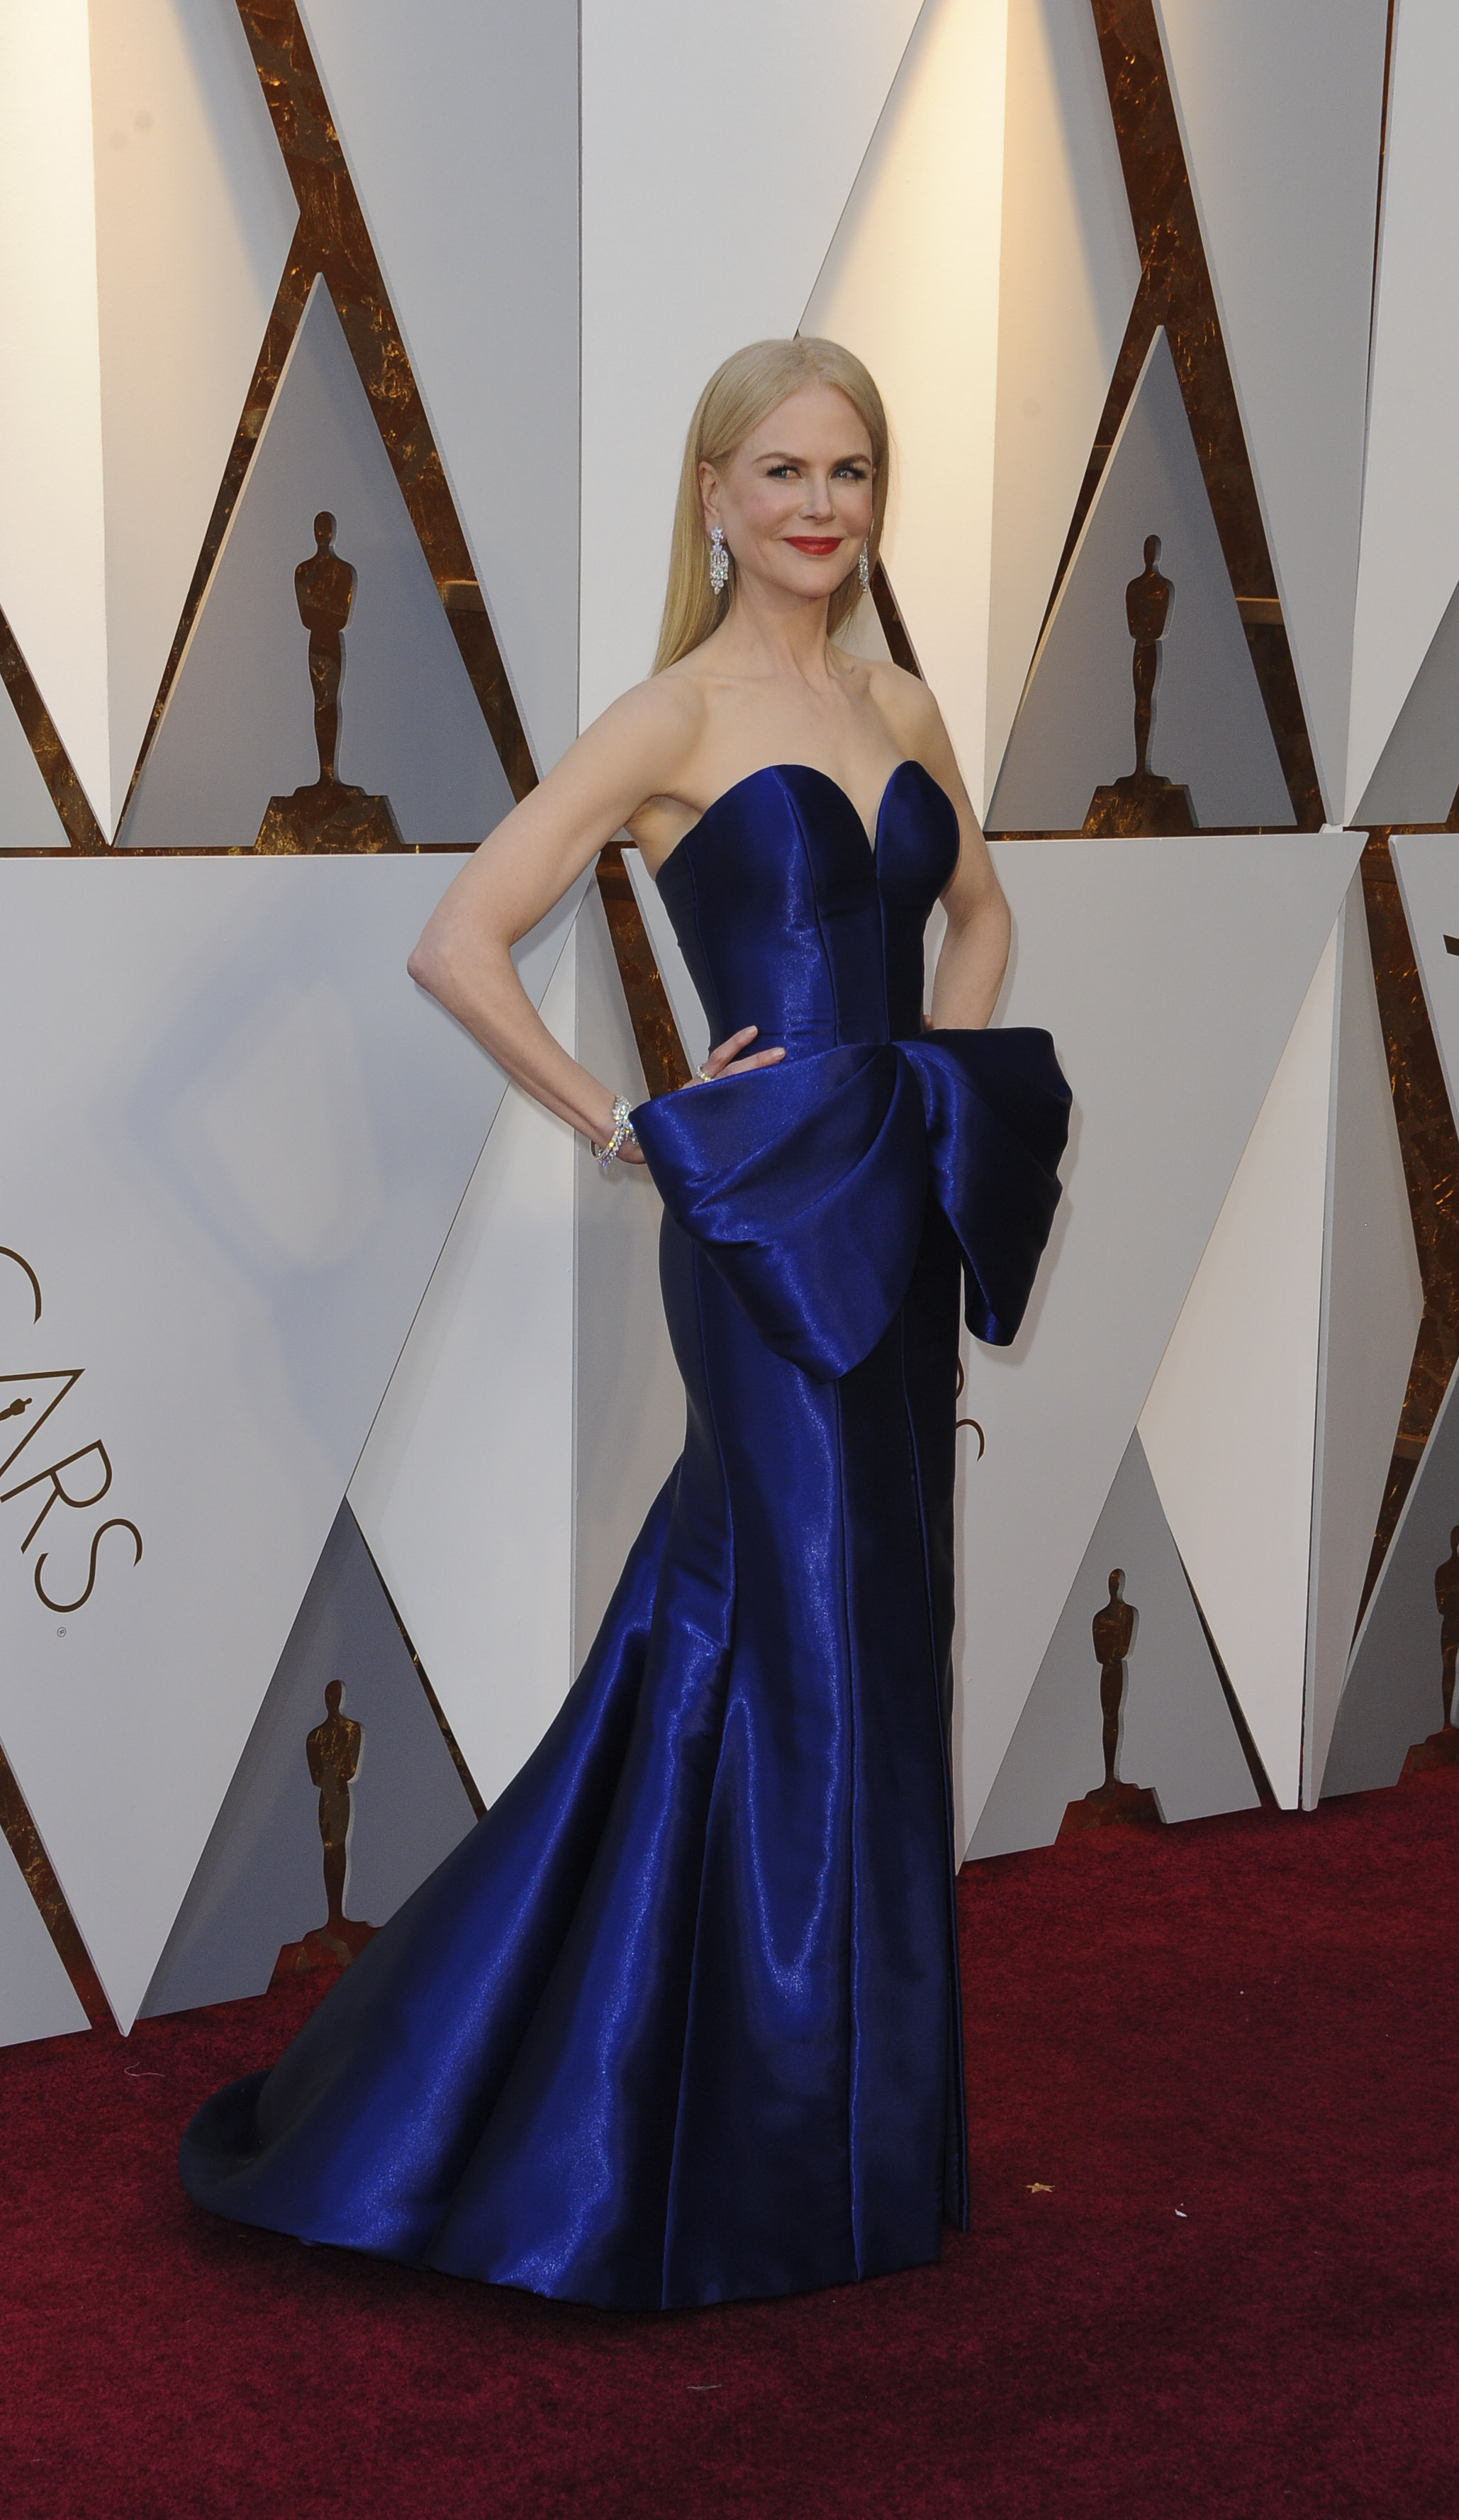 Nicole KidmanWhere arrives at the 90th Annual Academy Awards (Oscars) held at the Dolby Theater in Hollywood, California. (Image: Apega/WENN.com){&amp;nbsp;}<p></p>